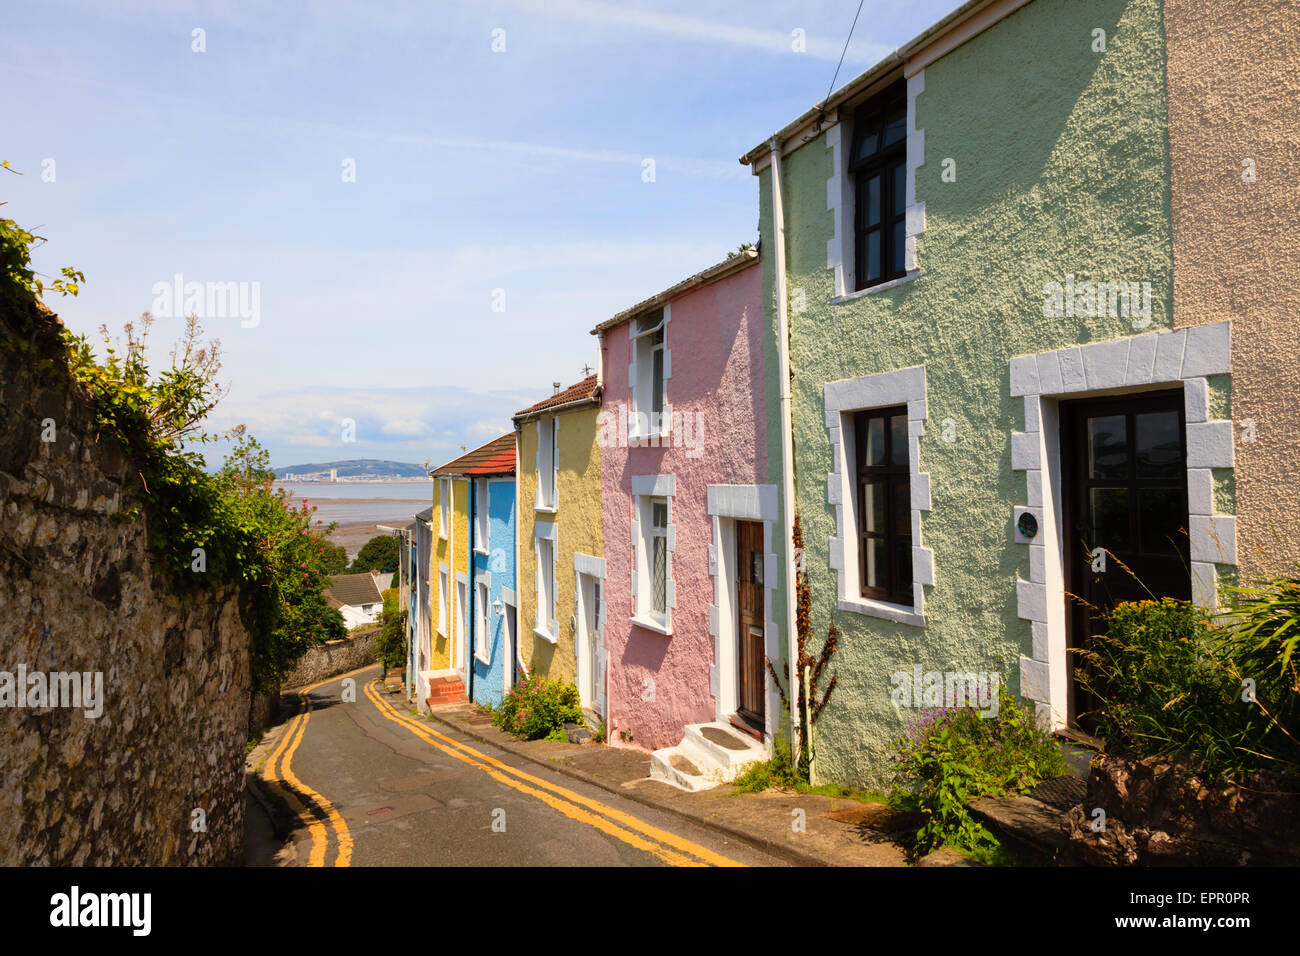 Colorful houses, Mumbles, Swansea, Wales. - Stock Image